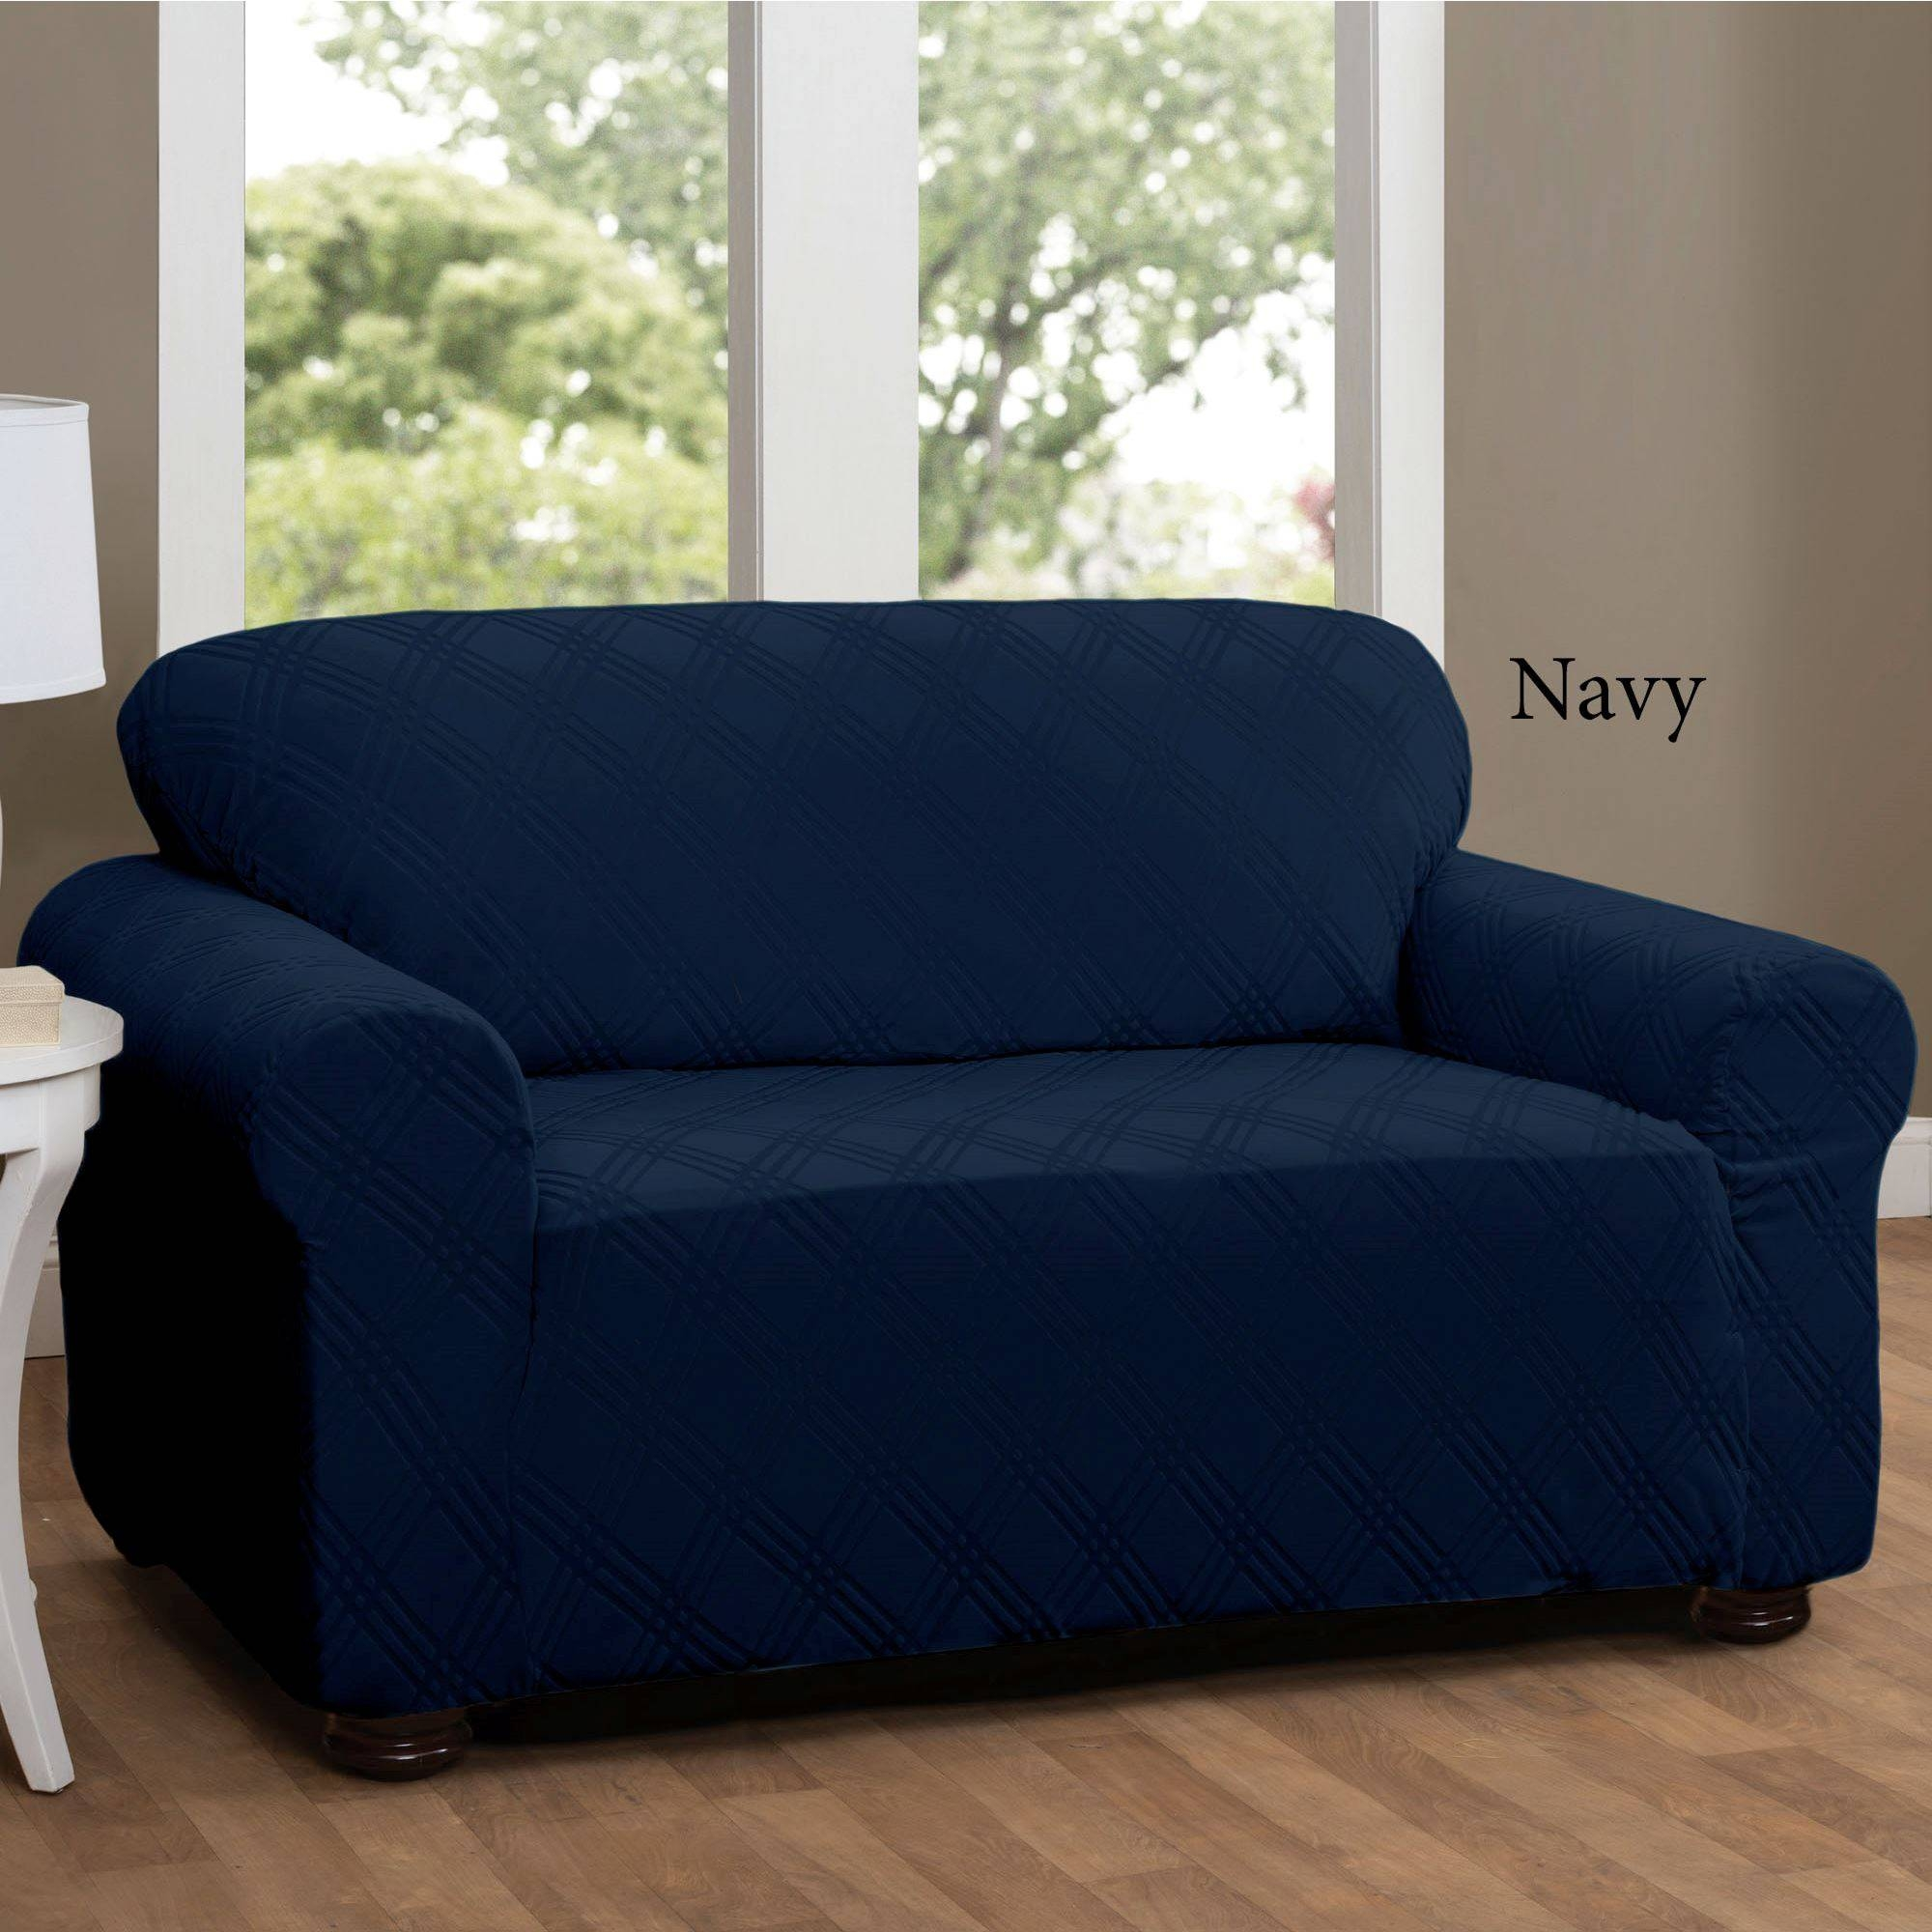 15 Best Ideas Of Navy Blue Slipcovers